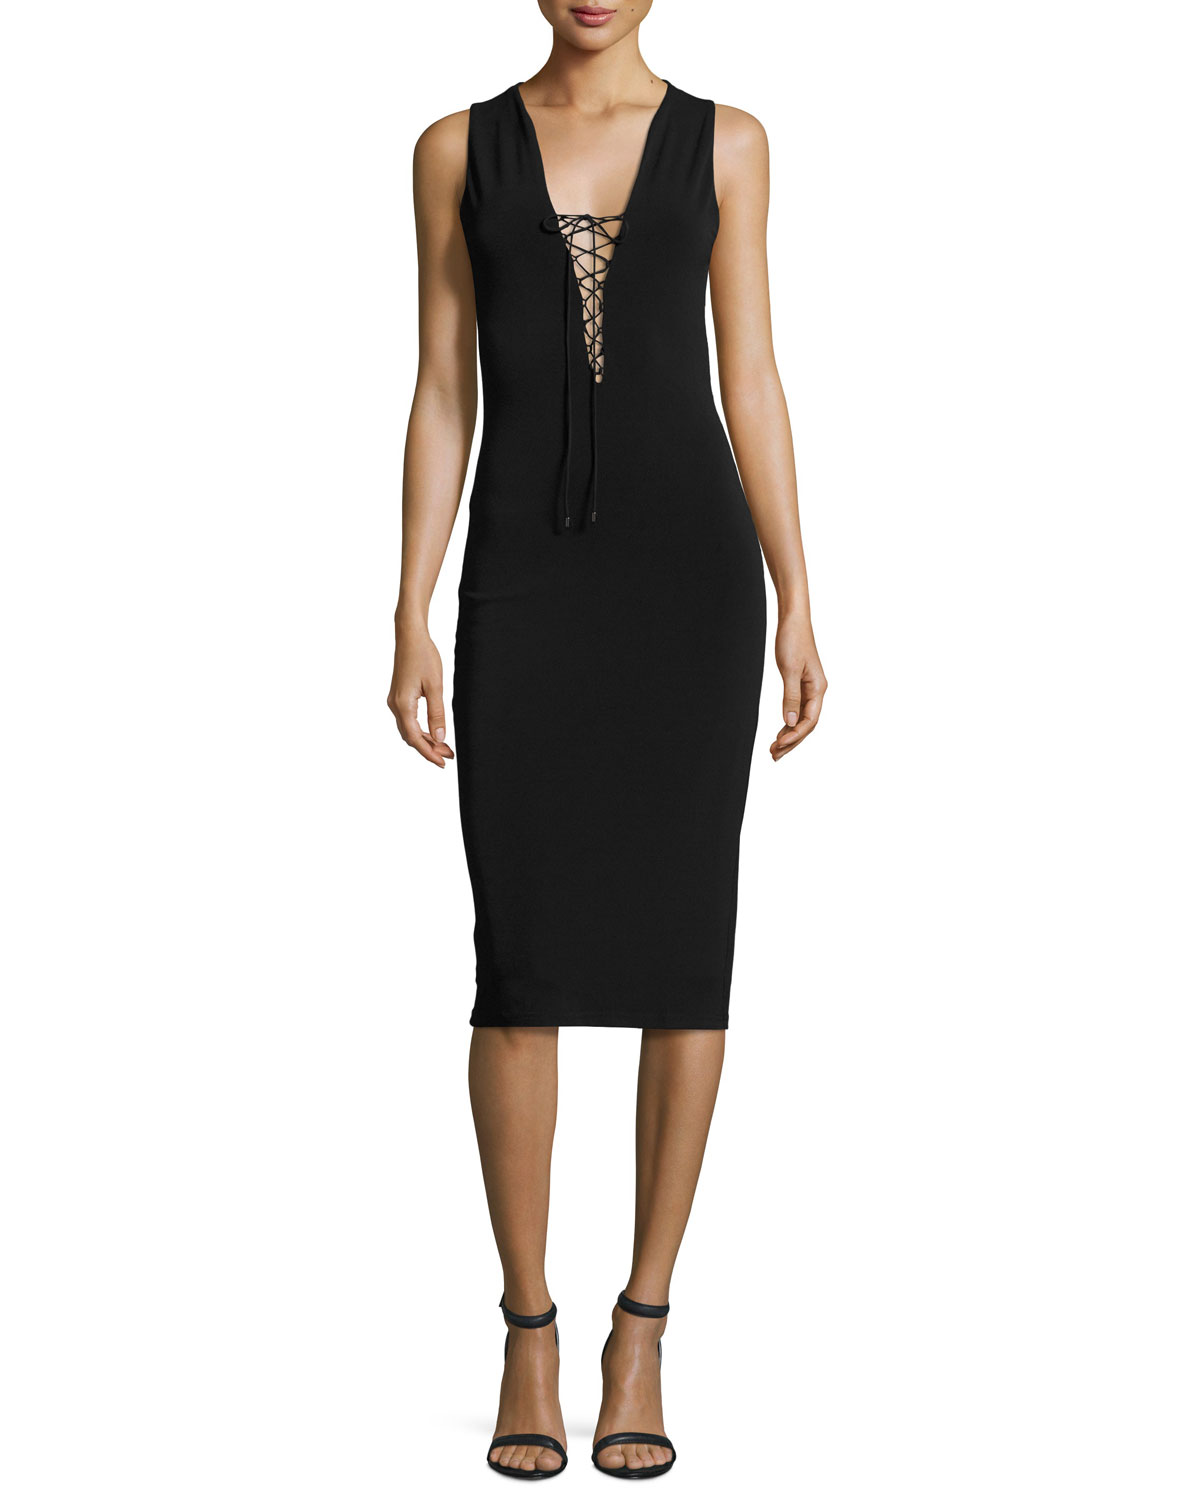 The Sheia Laced Cocktail Dress, Black